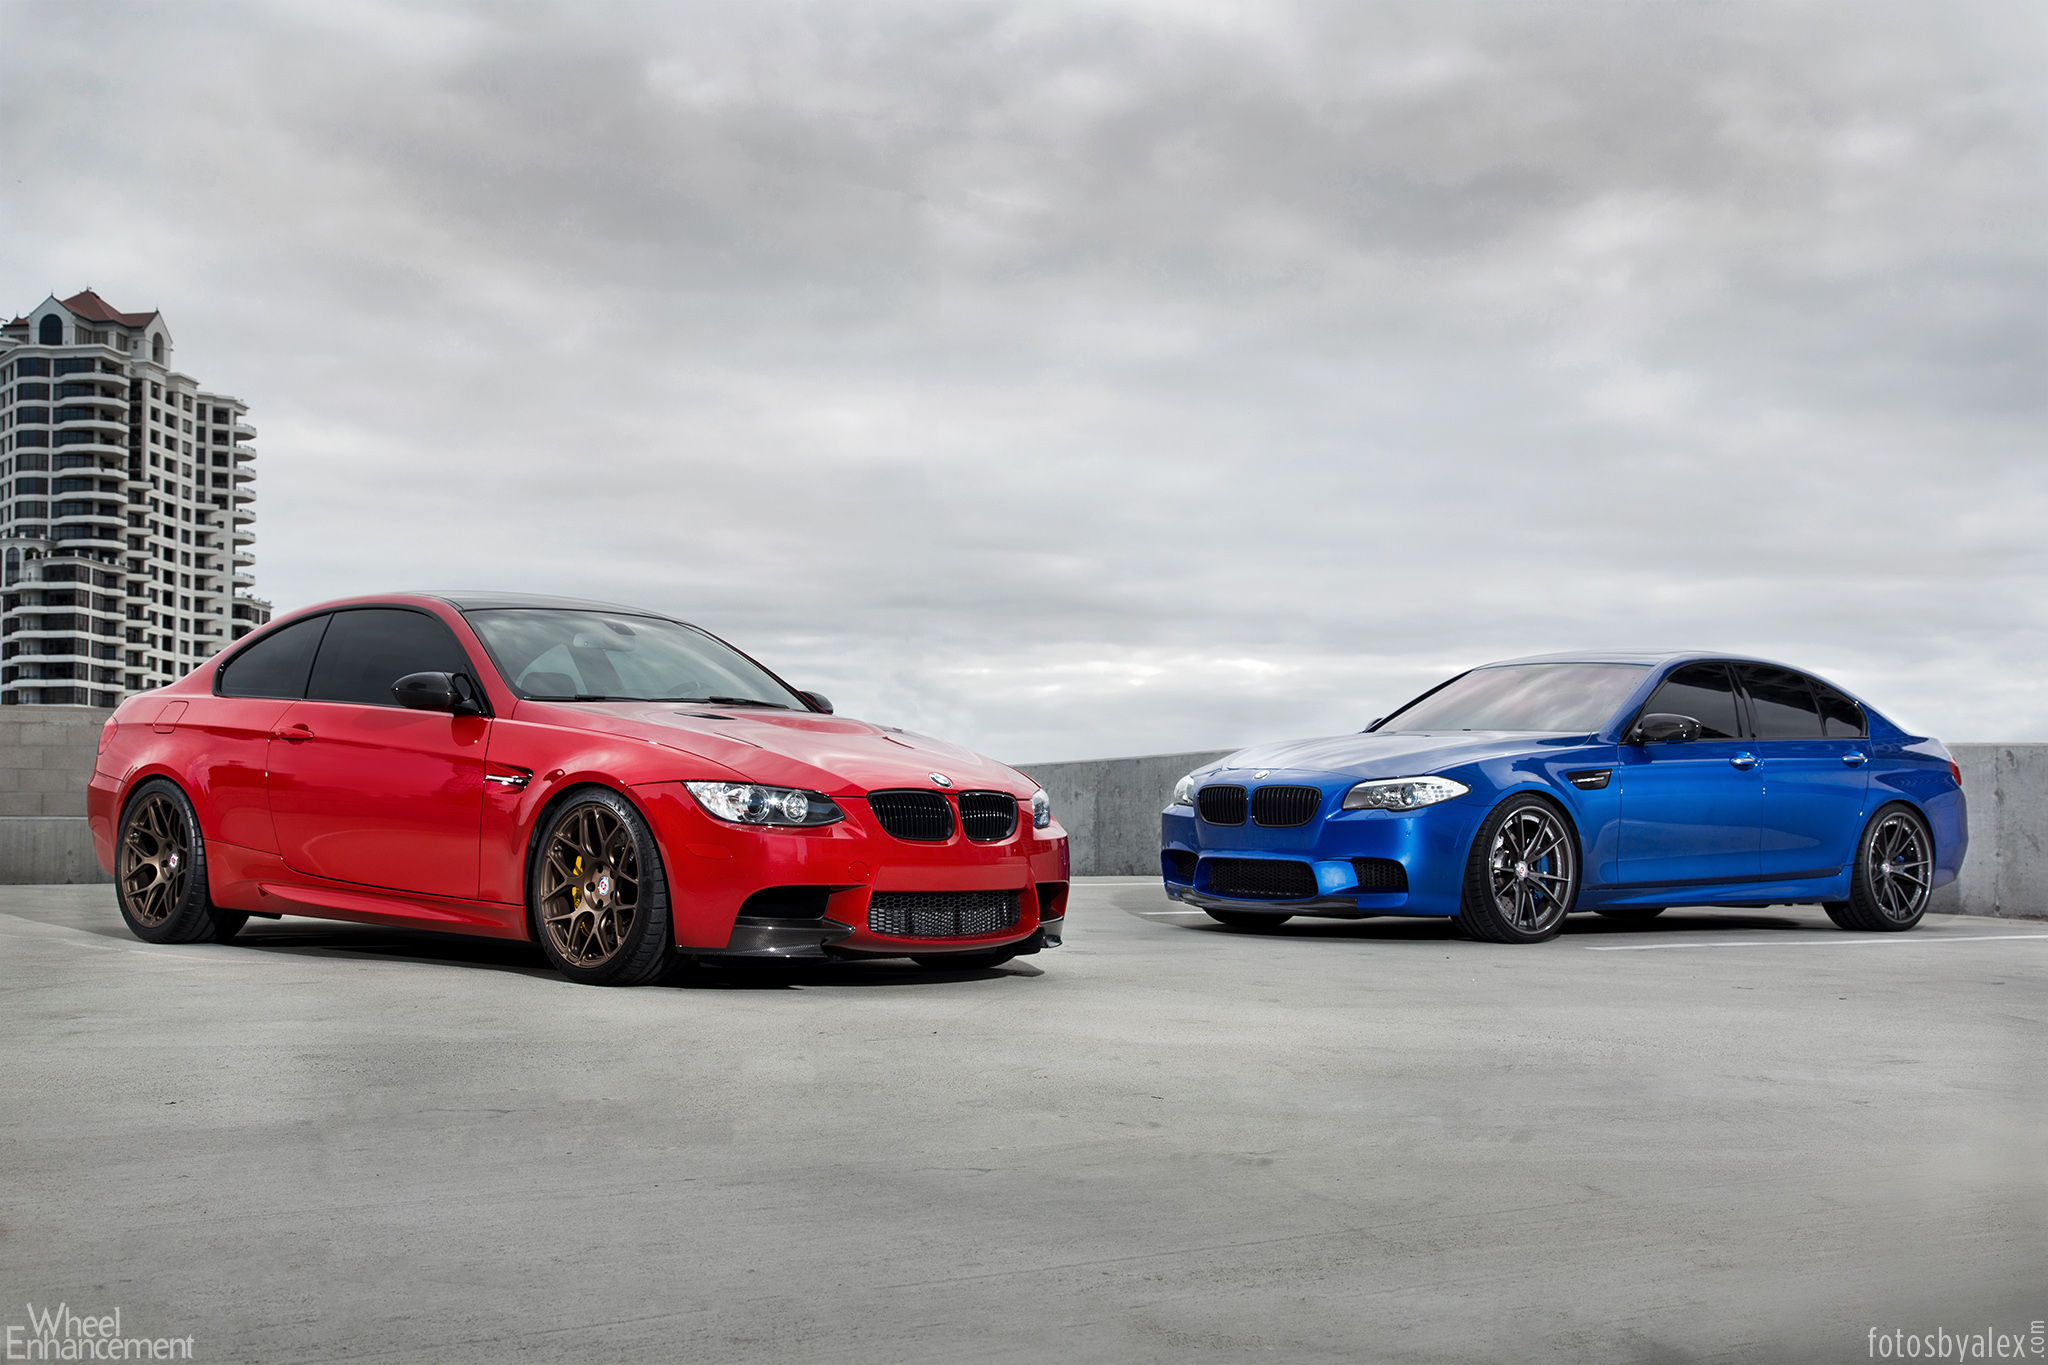 Bmw I8 Wheels >> M Brothers Pose Together: BMW M3 and M5 Riding on HRE ...